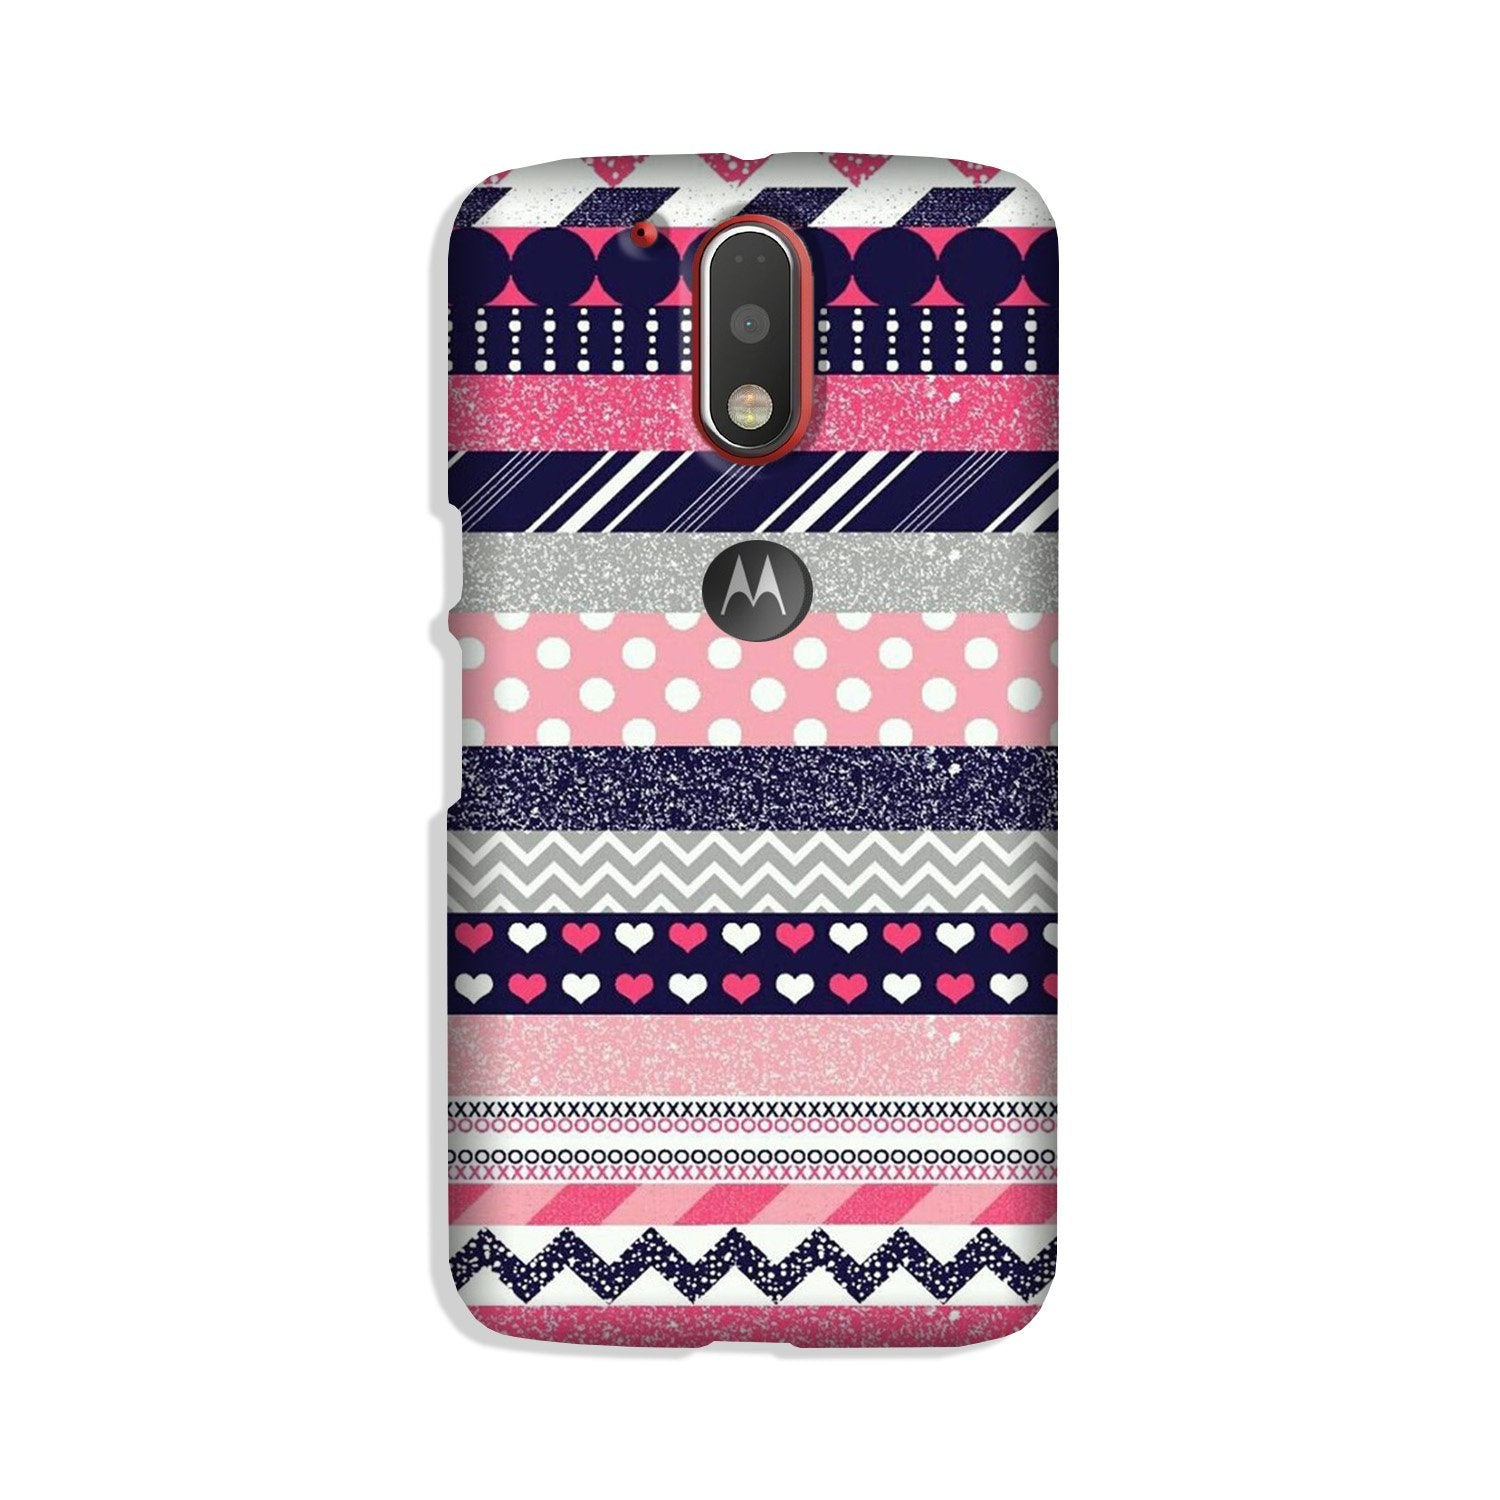 Pattern Case for Moto G4 Plus